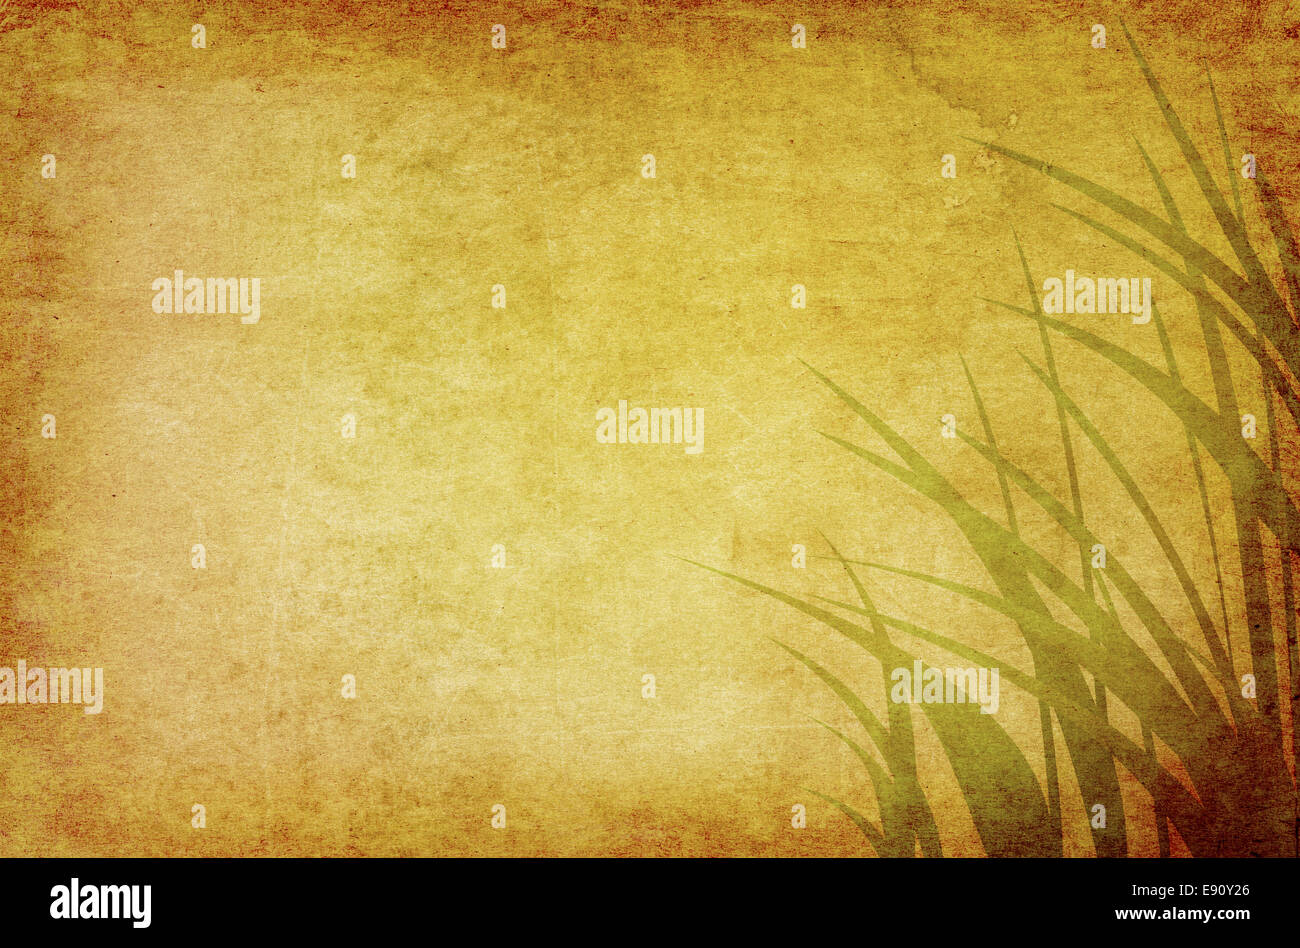 ambient grass graphics - Stock Image